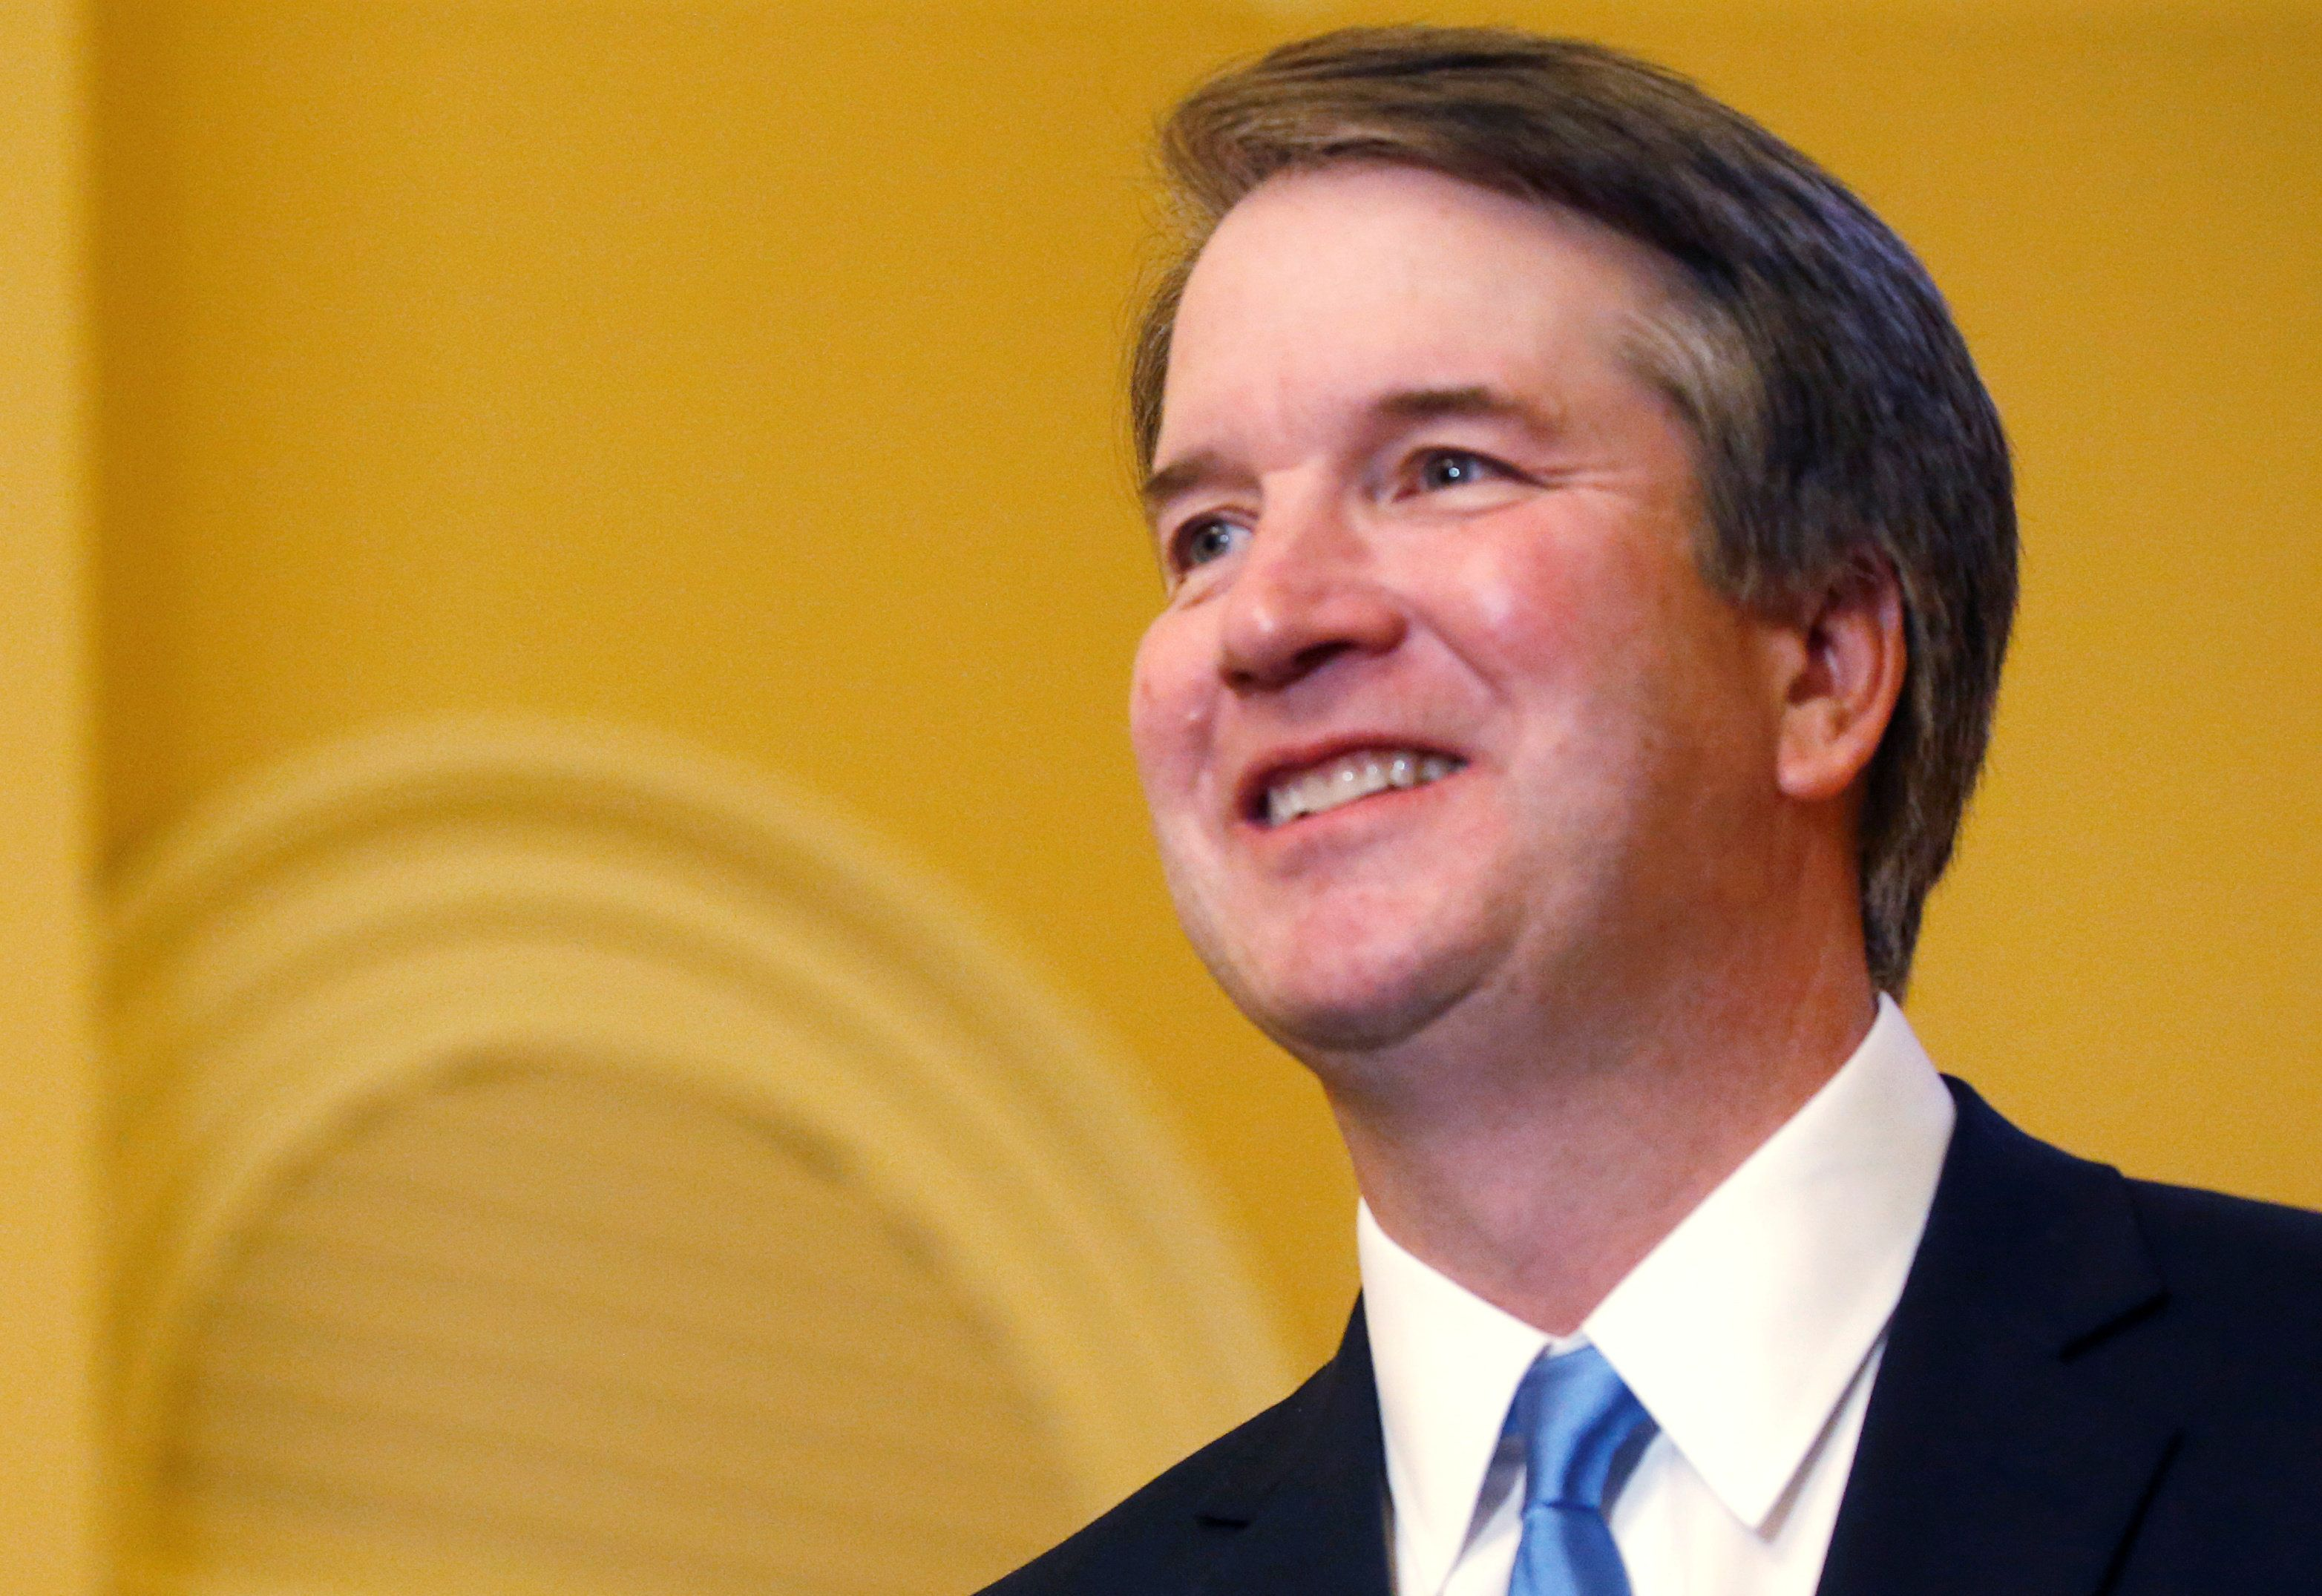 Kavanaugh Nomination Sparks Partisan Uproar On Abortion Rights